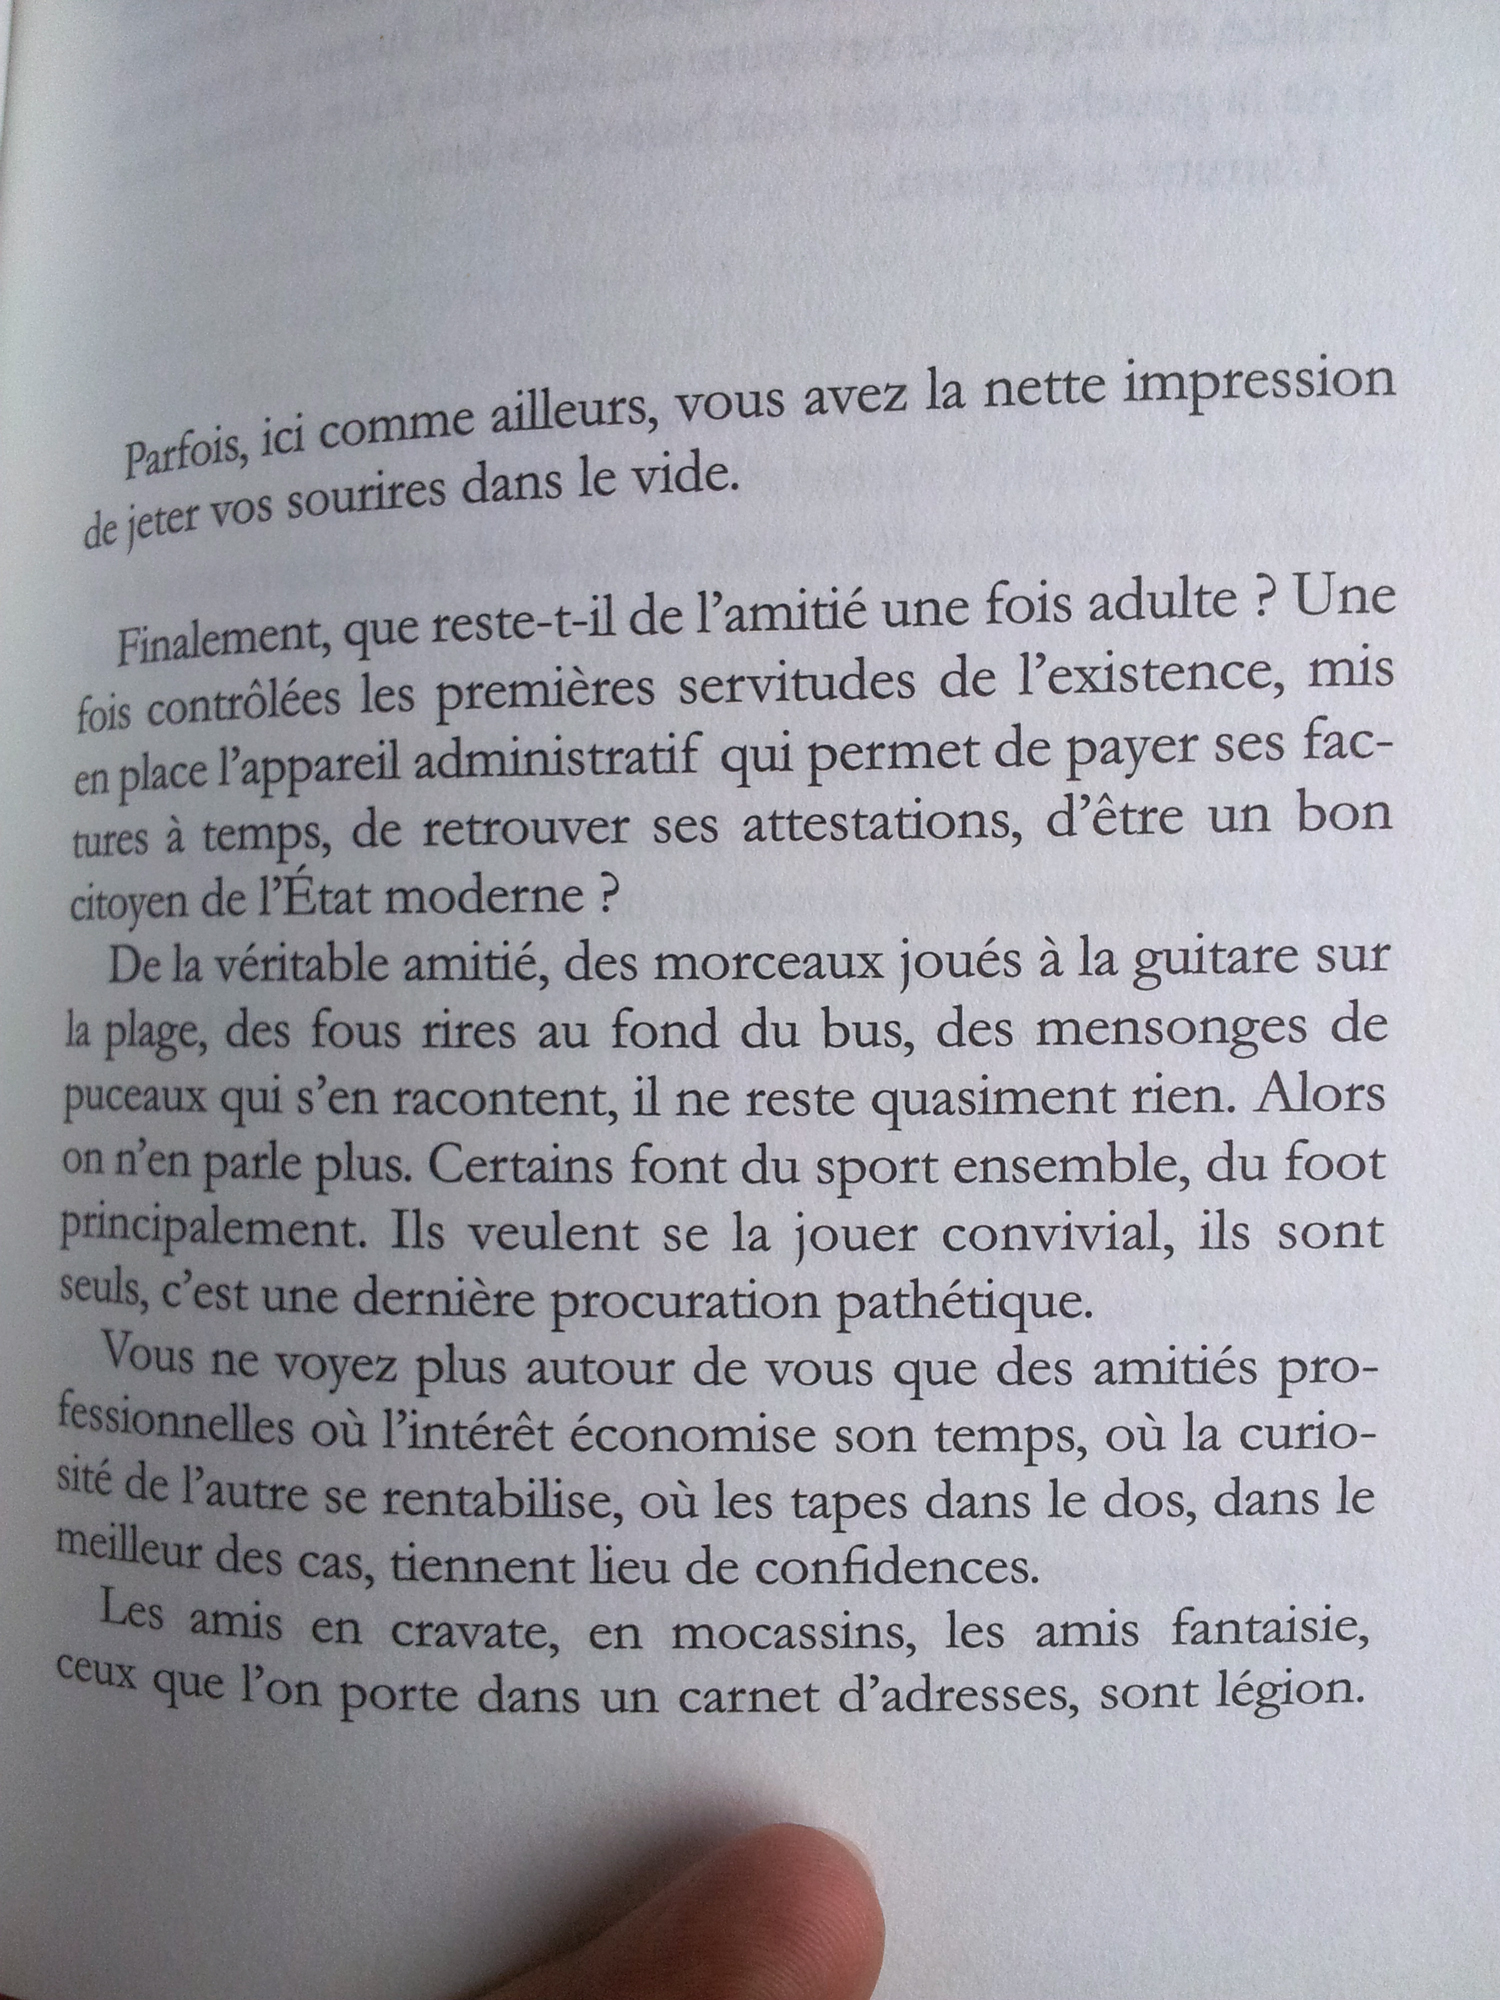 La Disparition du monde réel (page 47), Marc Molk, collection « Qui Vive », éditions Buchet Chastel